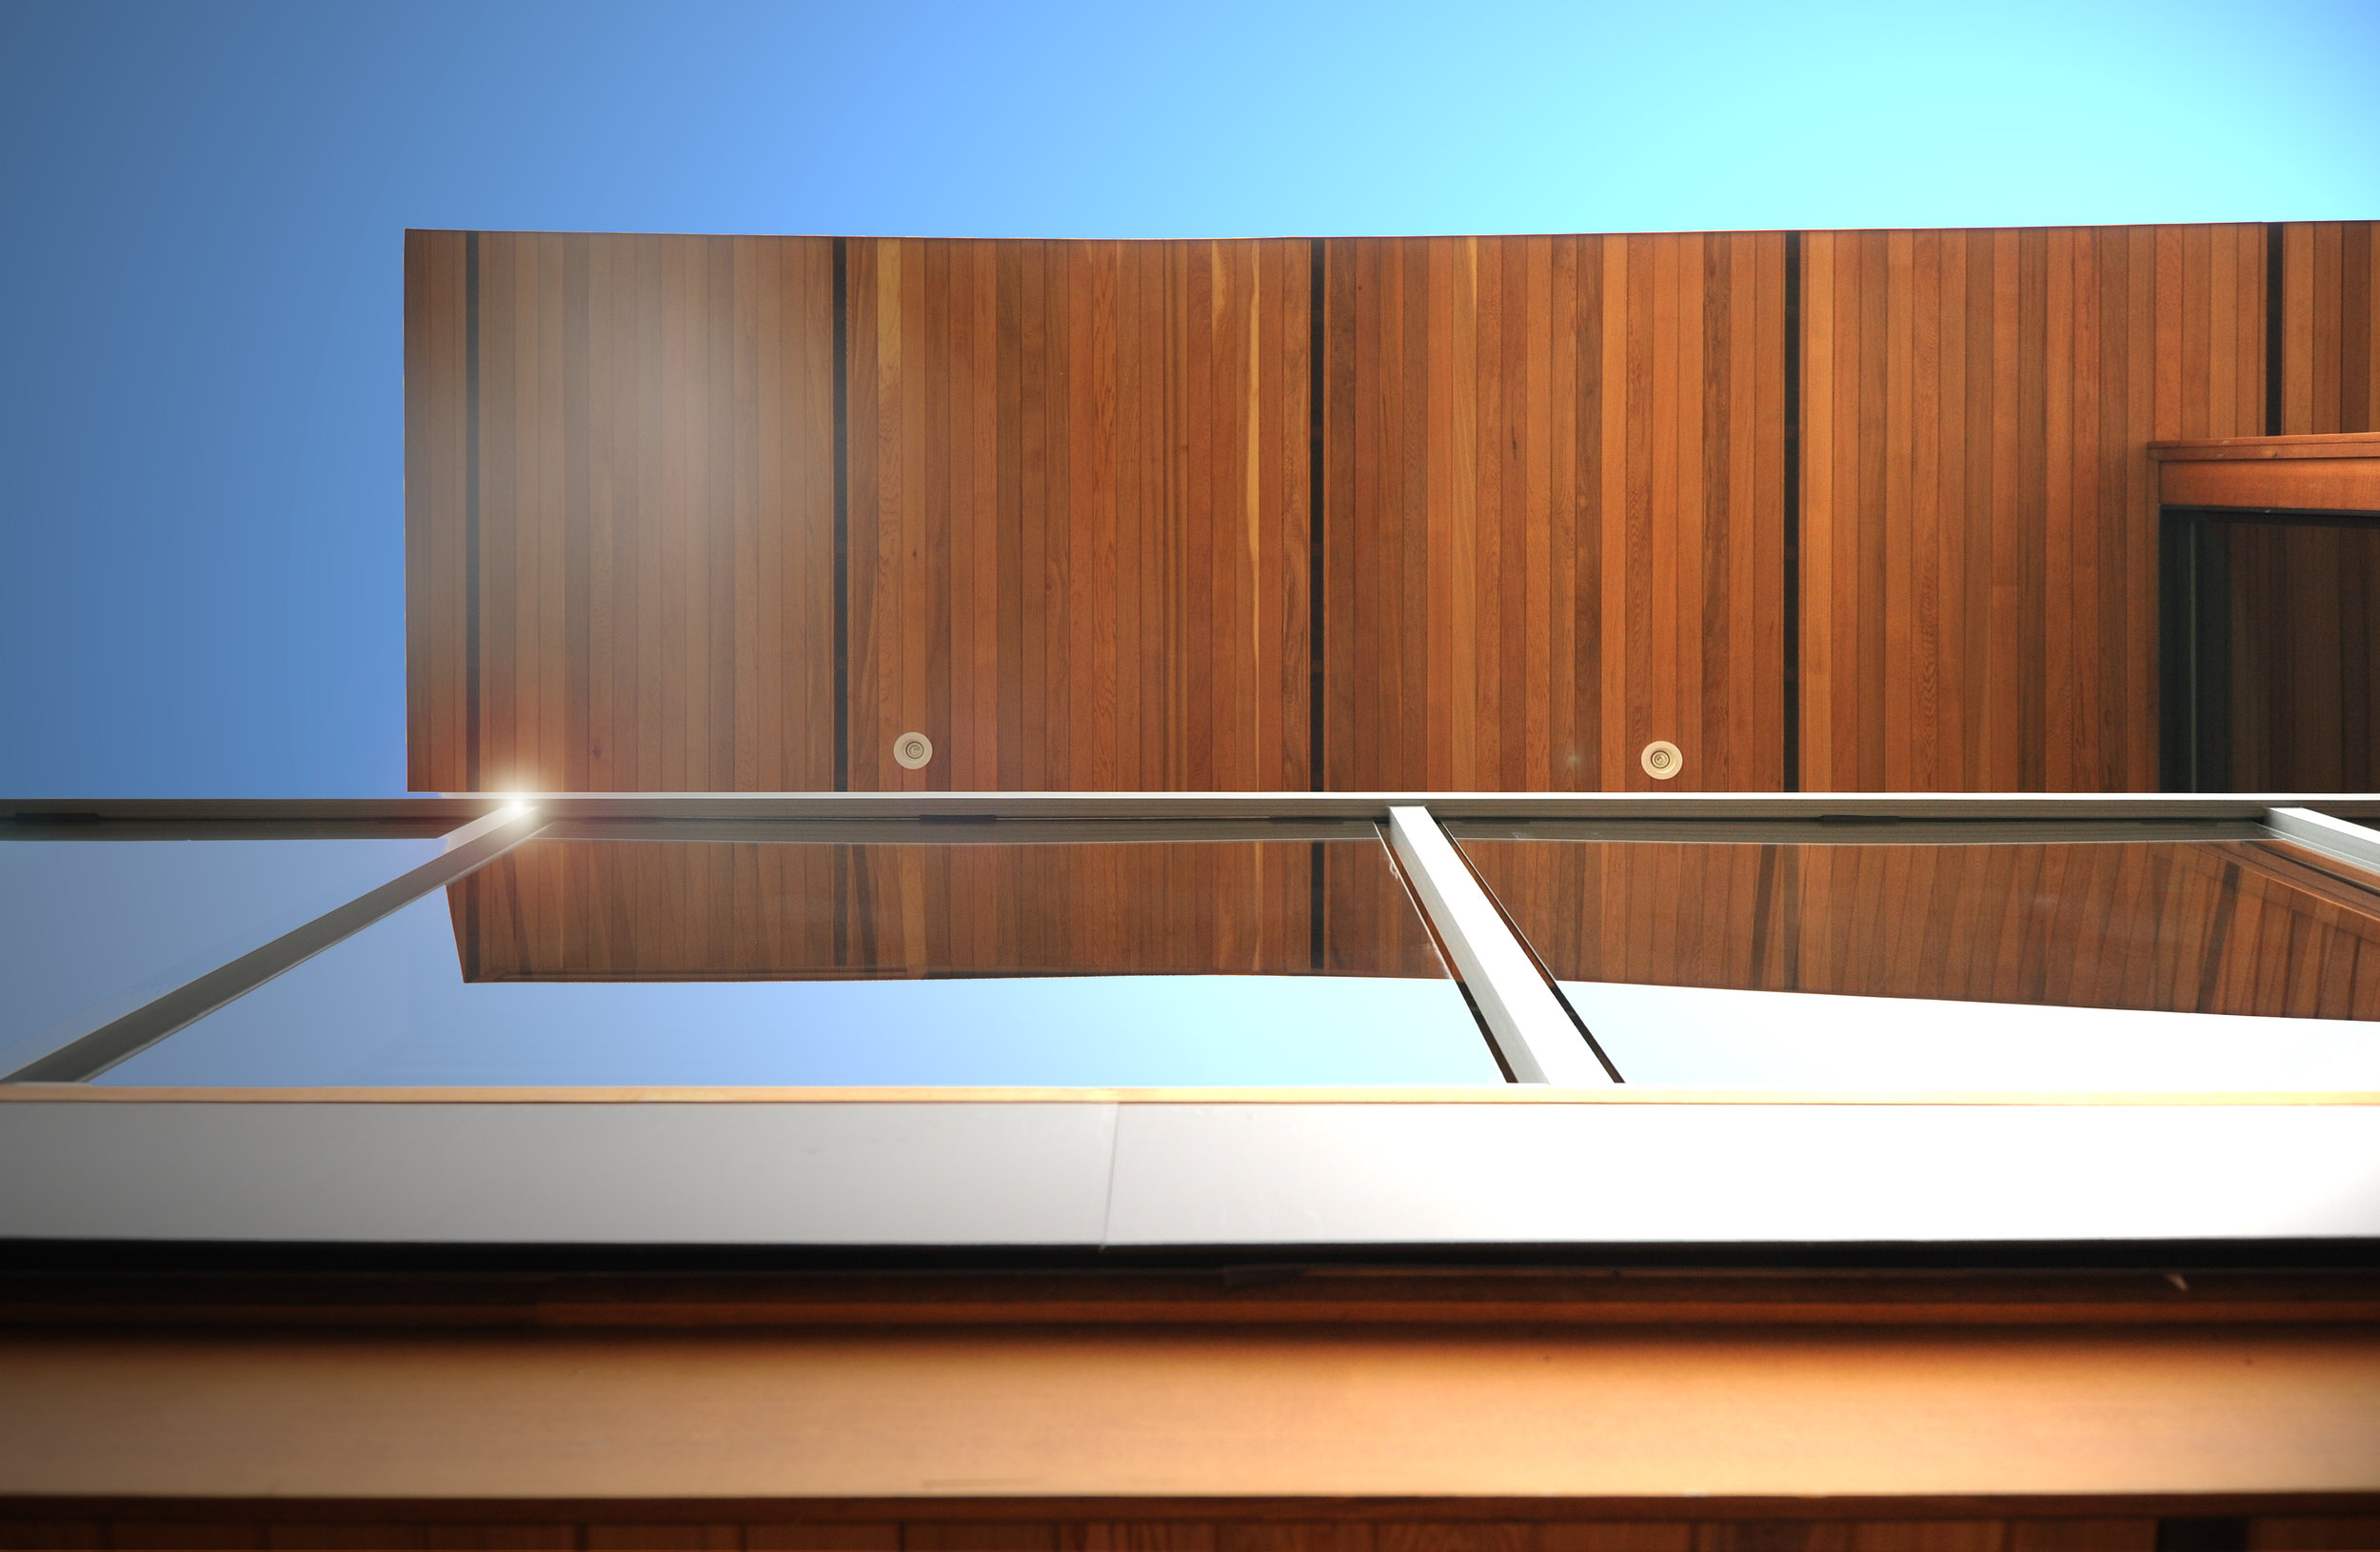 turkel_modern_design_prefab_home_west_vancouver_windows.jpg